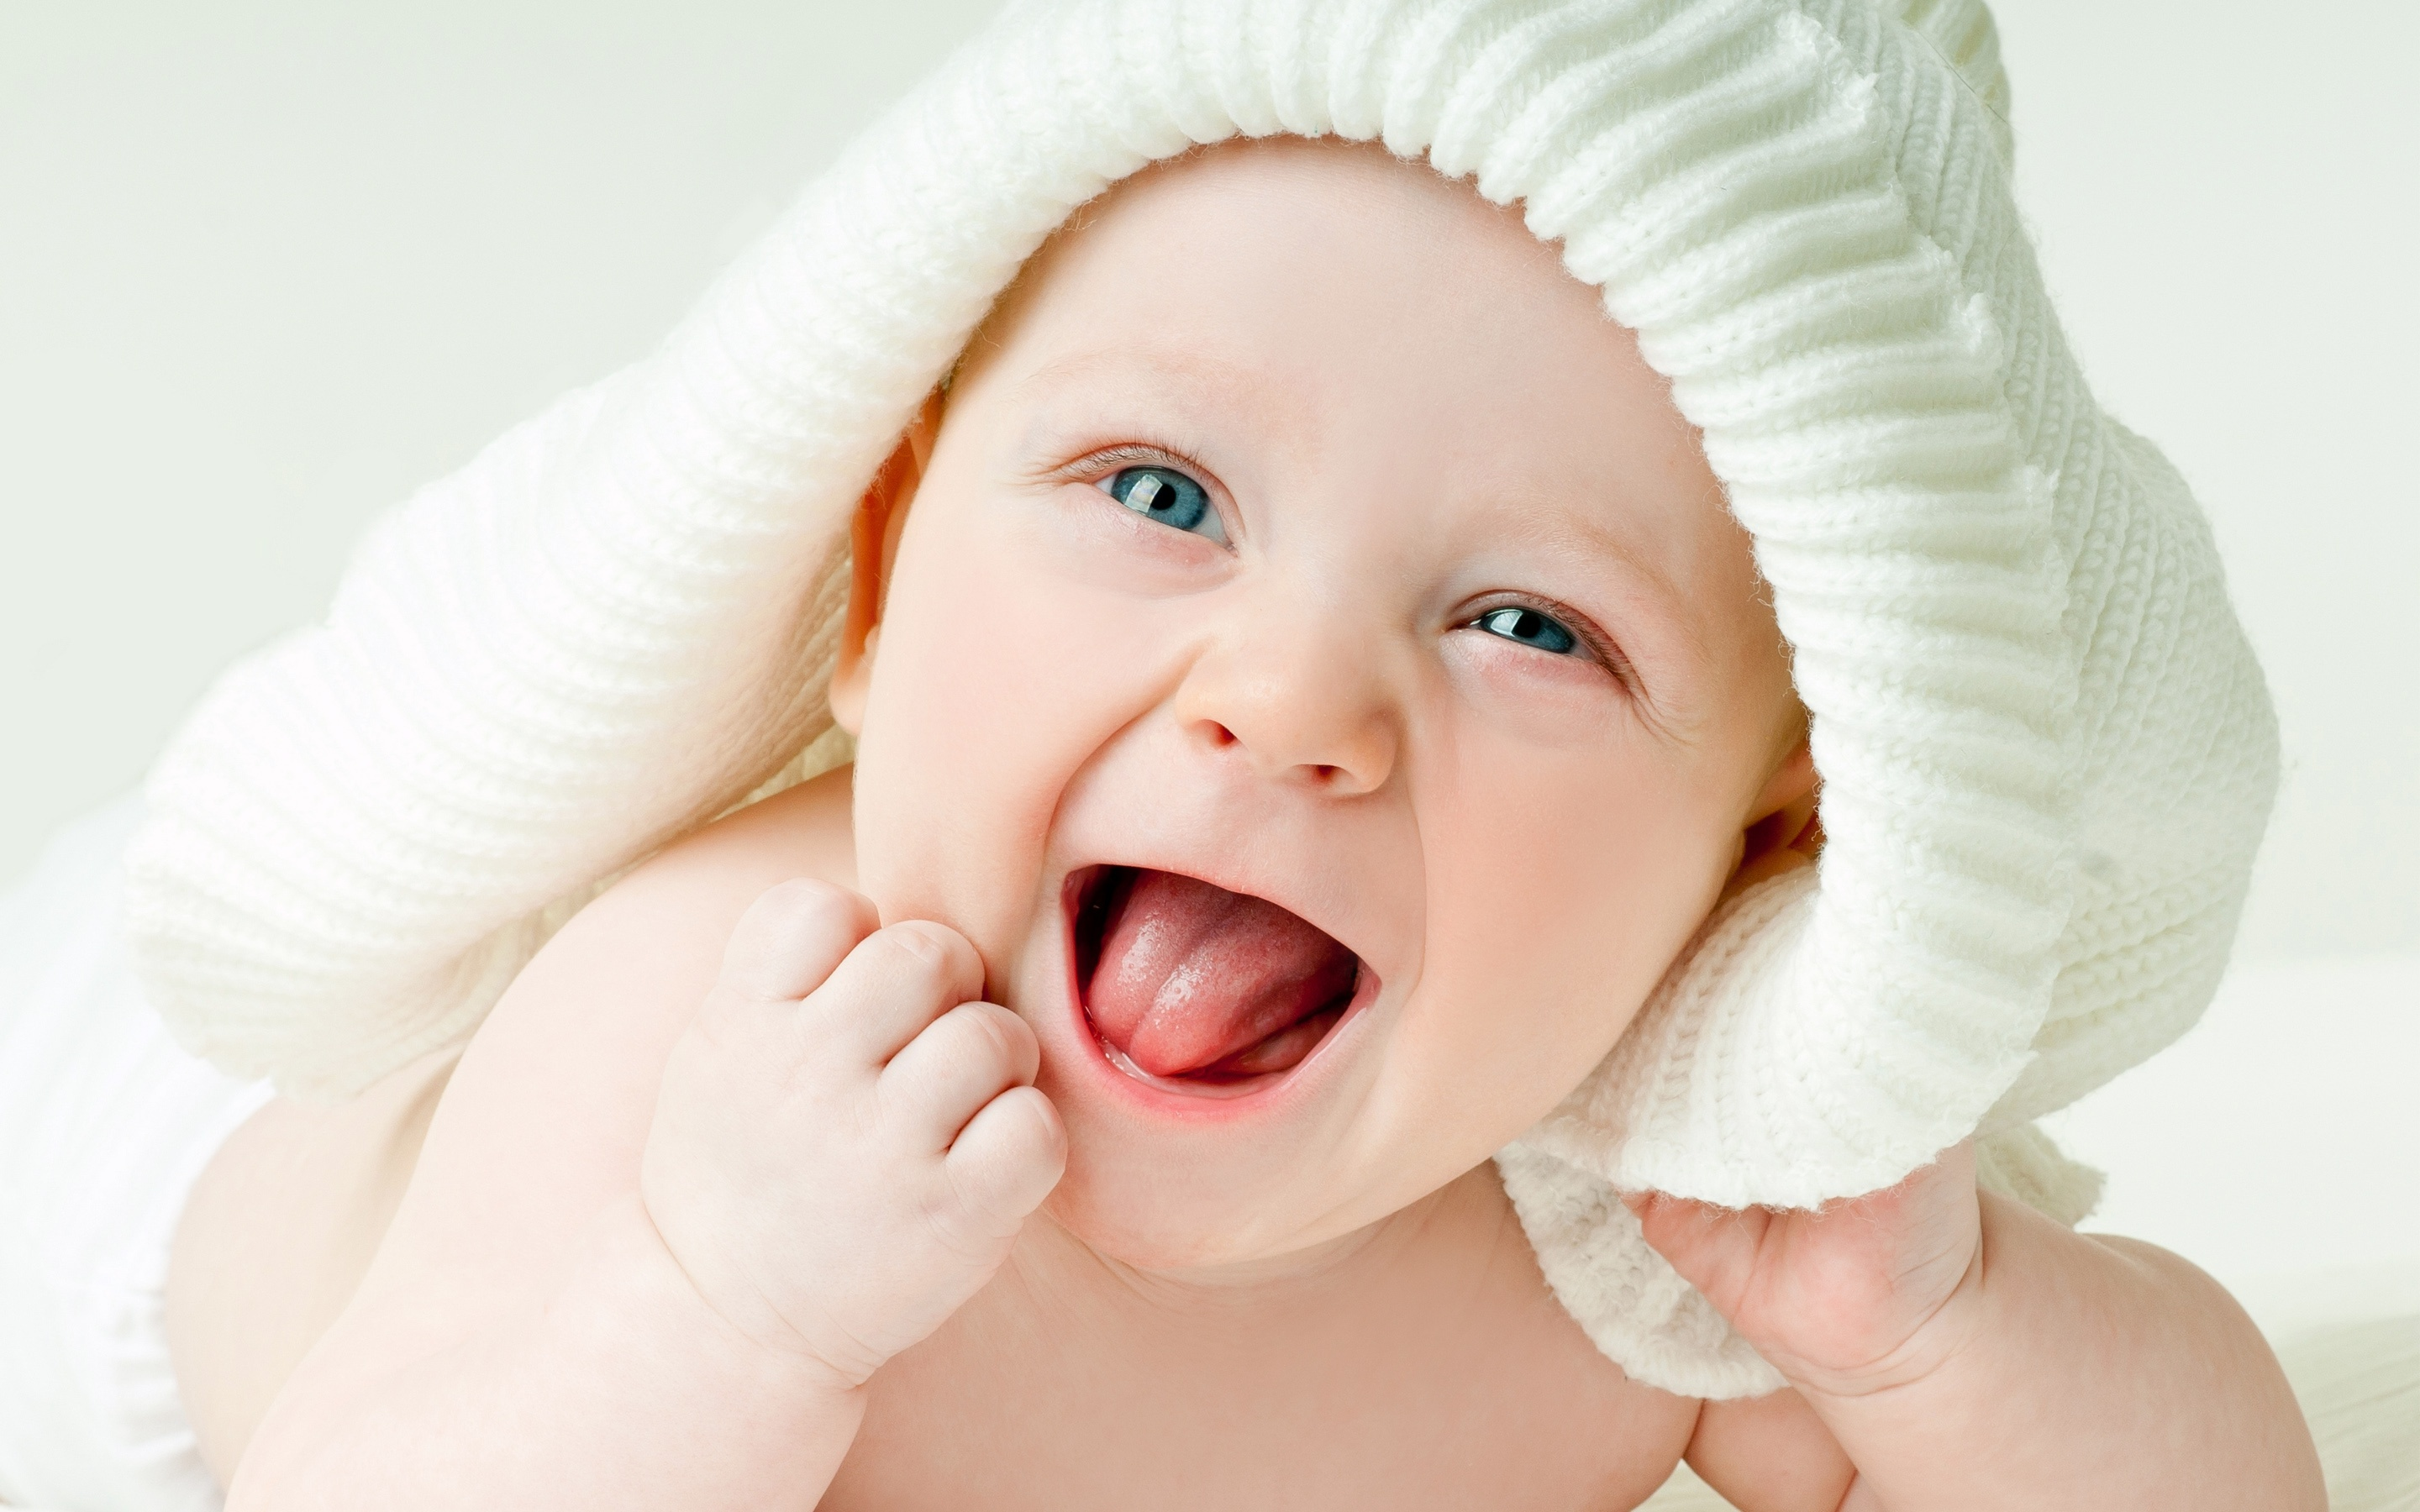 Cute Baby Boy Green Eyes Wallpapers In Jpg Format For Free Download